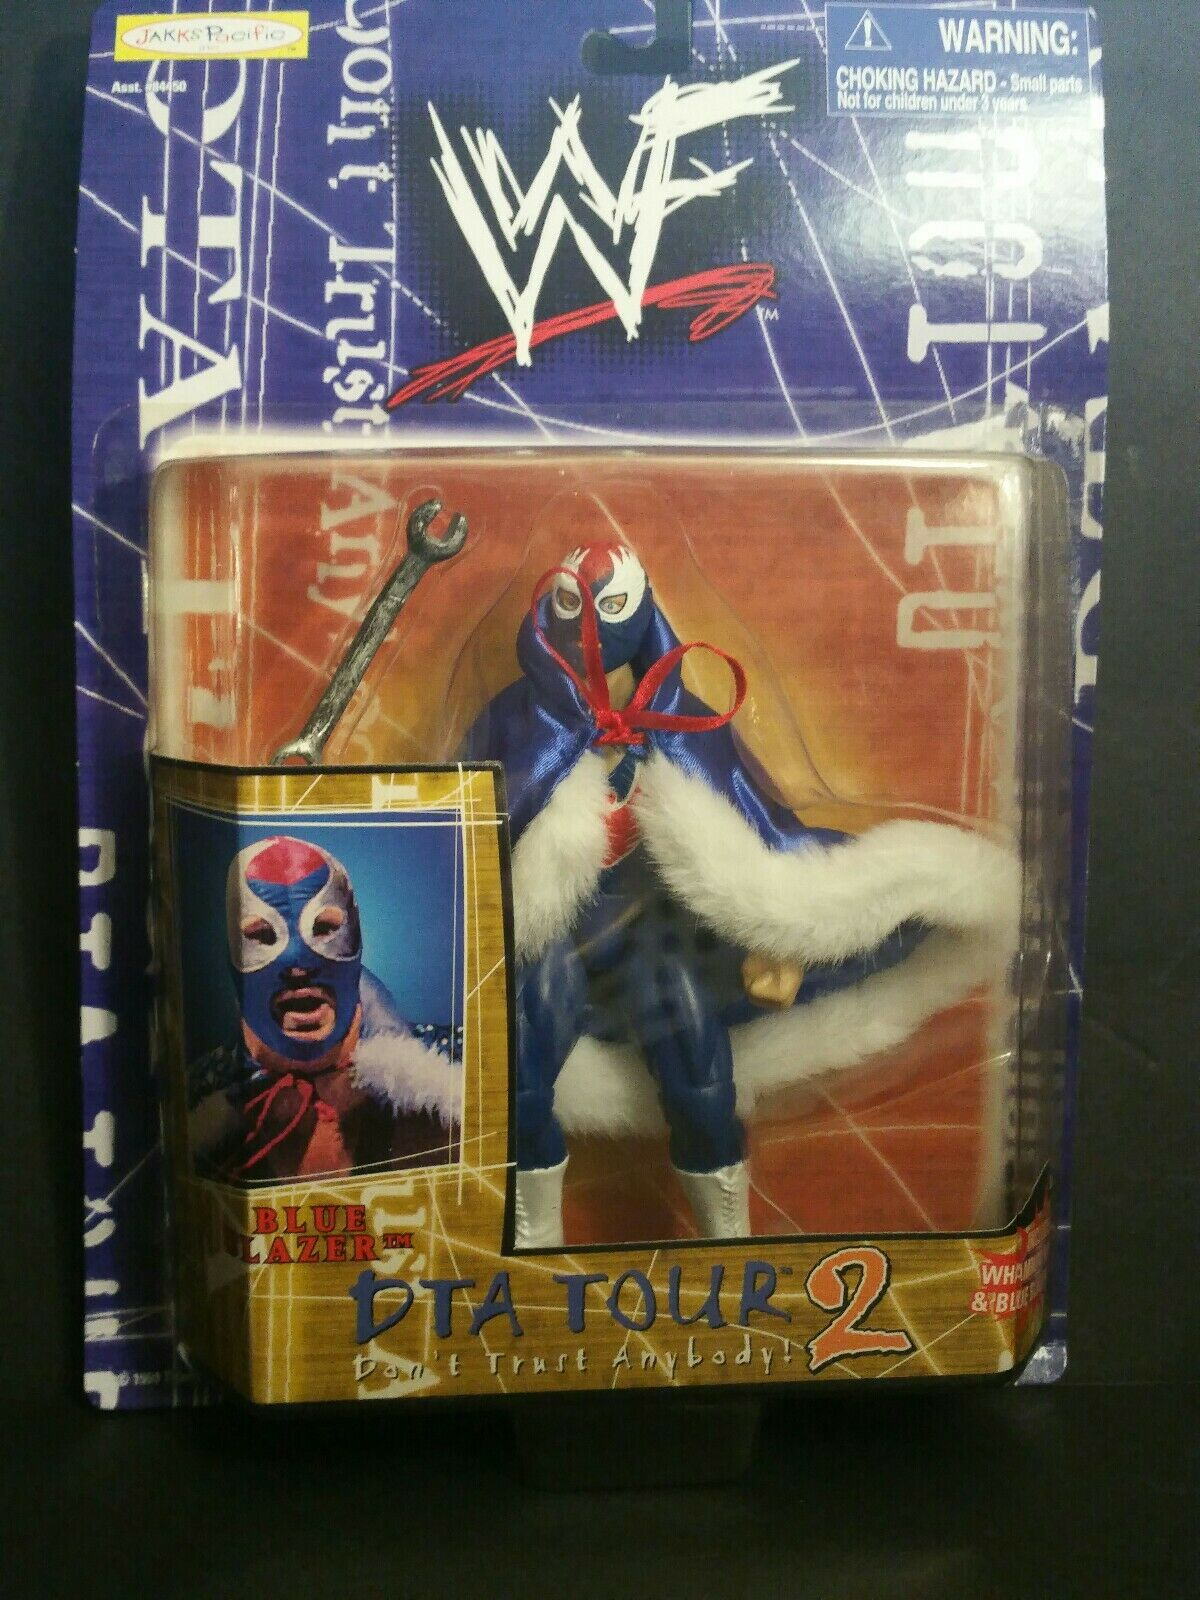 WWF DTA TOUR 2 bleu Blazer Action Figure (107)  (8-12)  confortablement